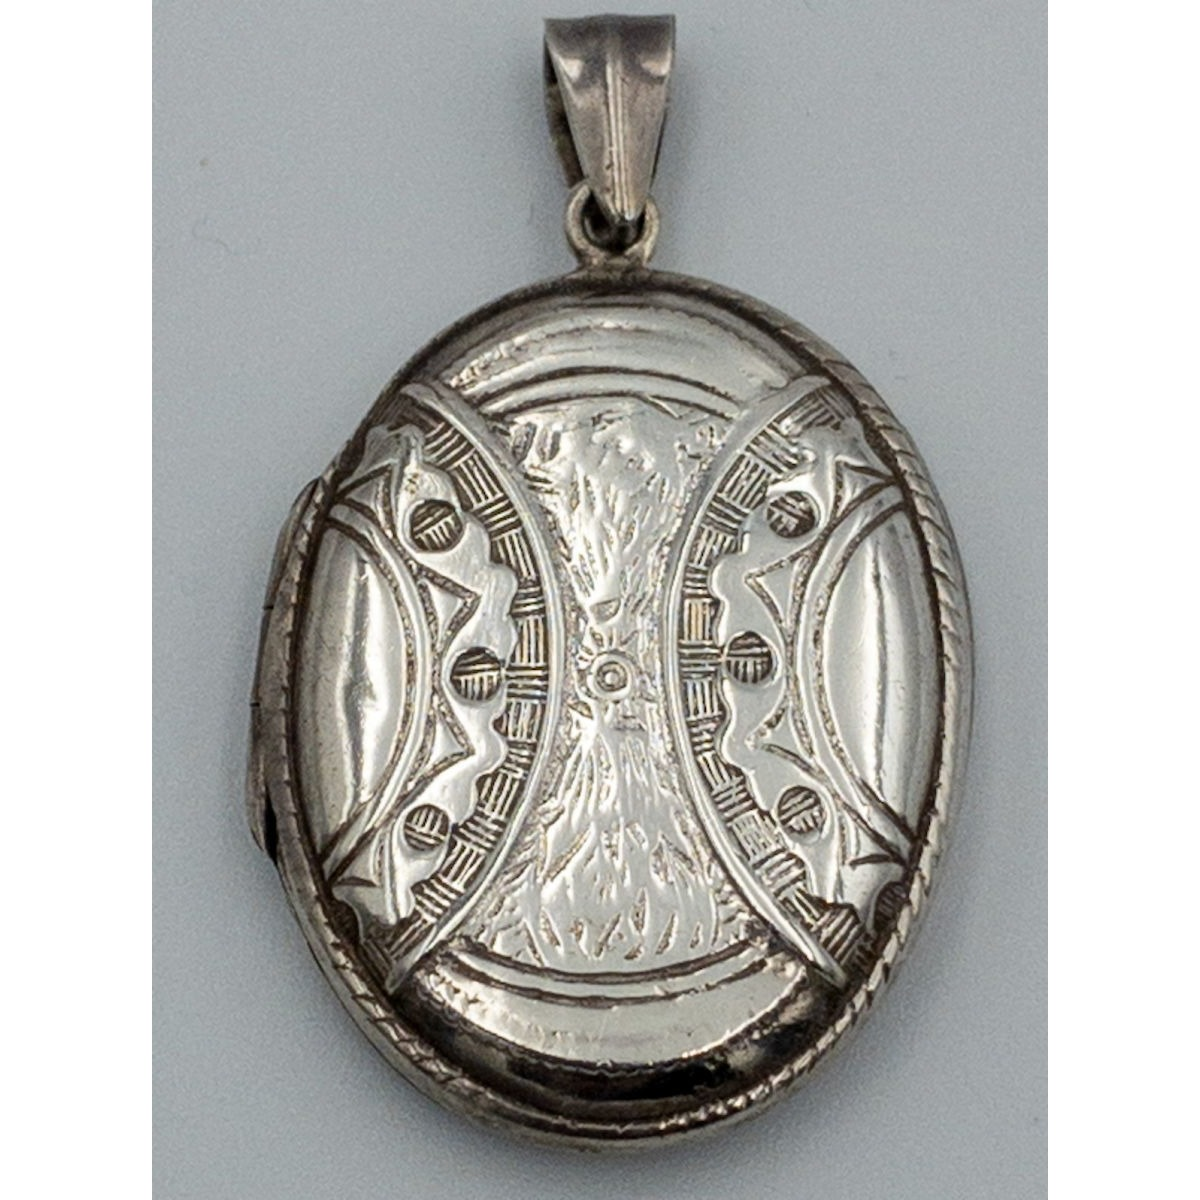 Small Flat, Interesting Curved Bands and Overall Decoration Antique English Silver Locket